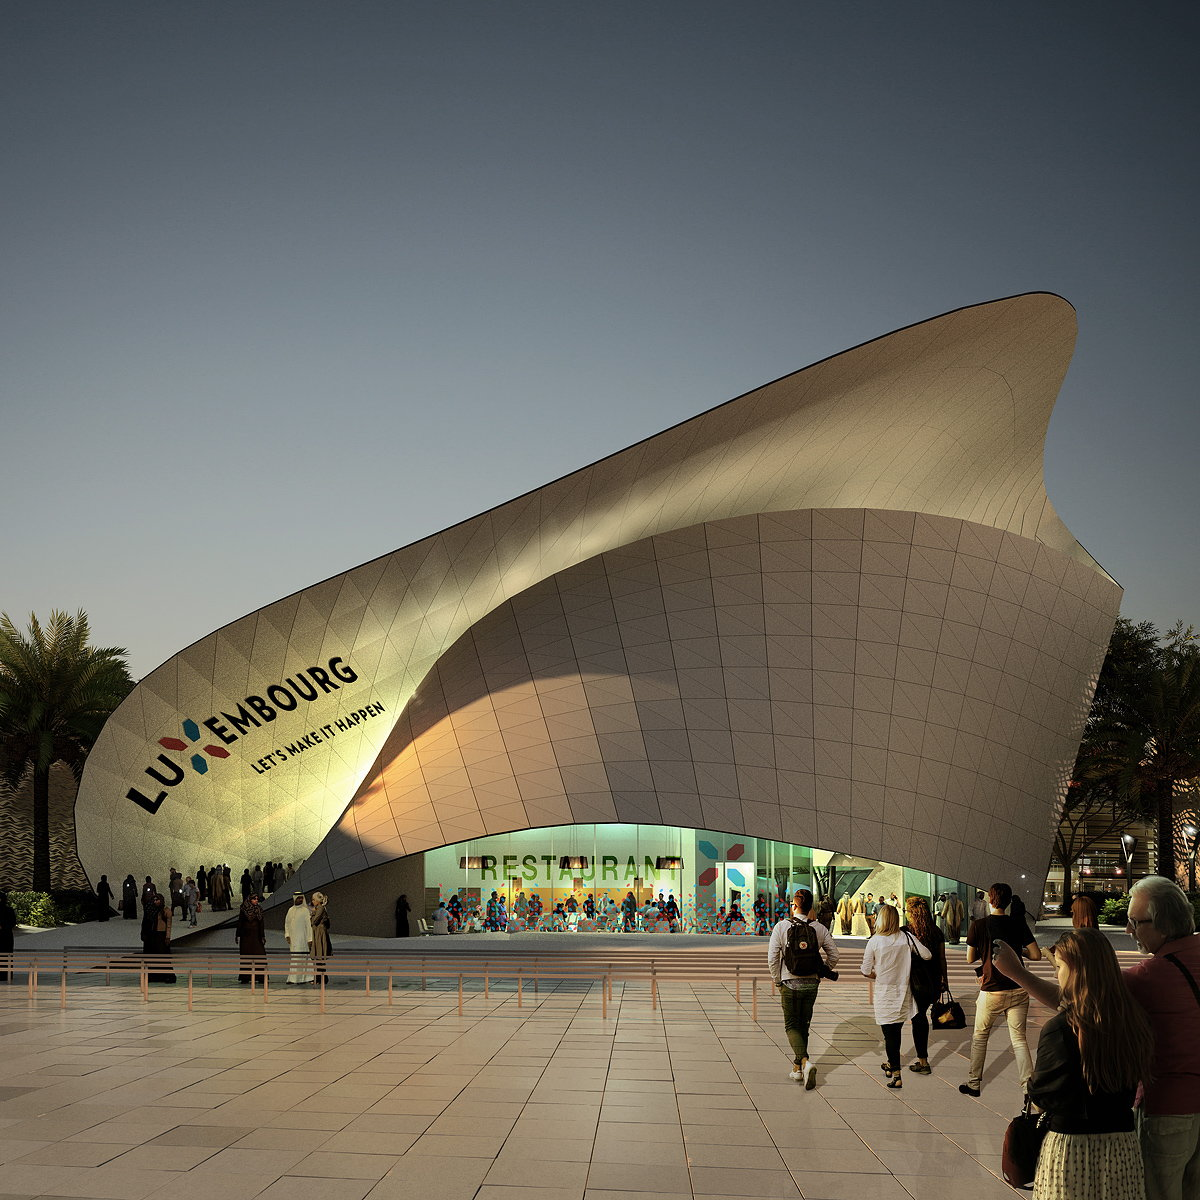 Luxembourg Pavilion for Expo 2020 Dubai